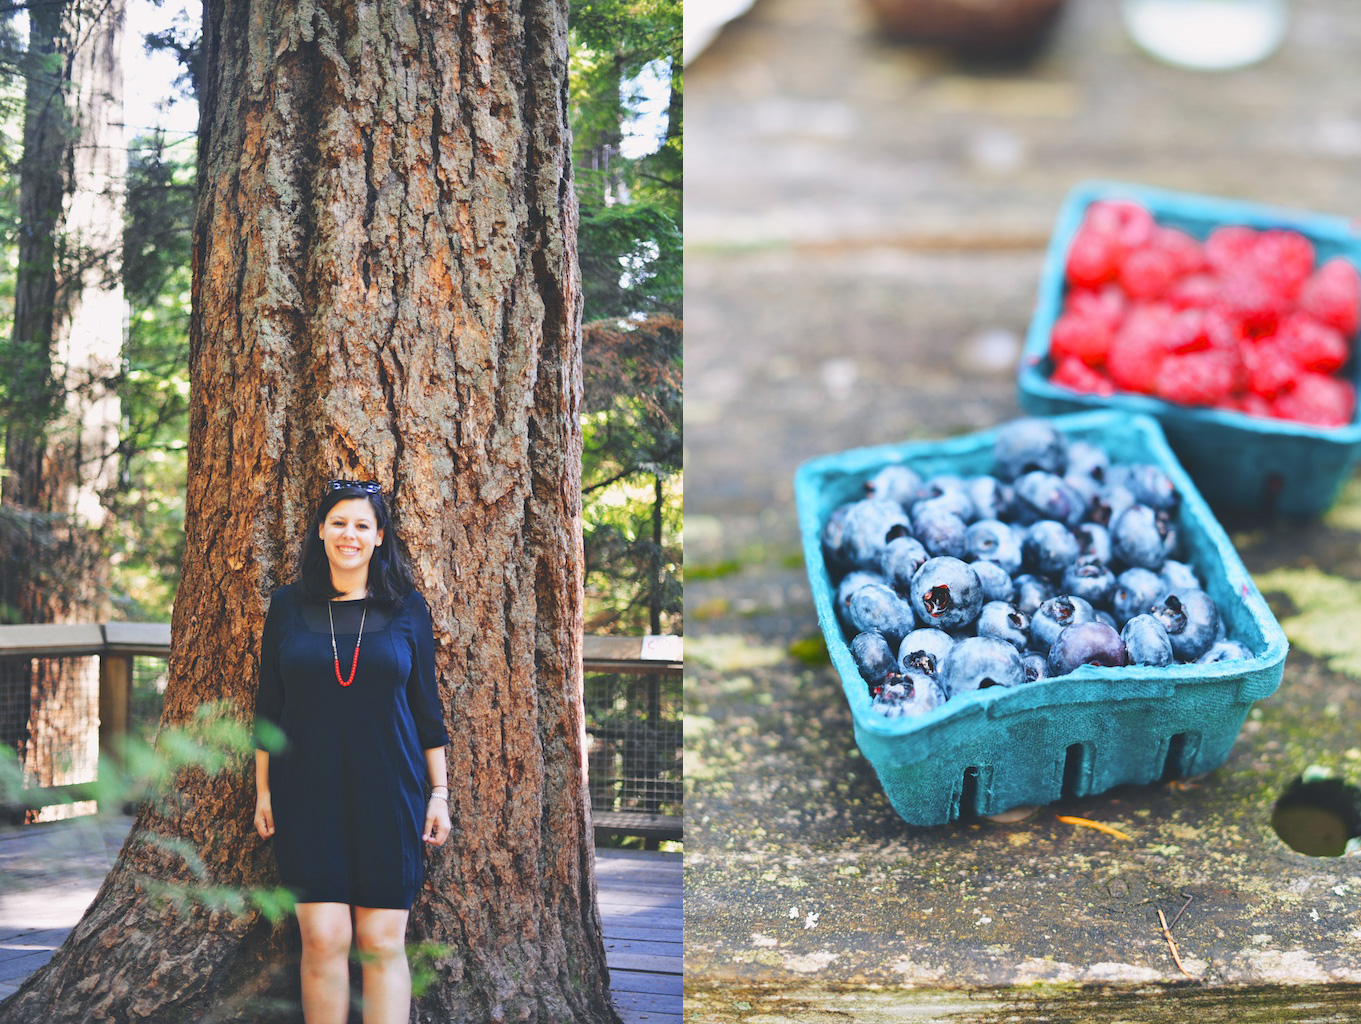 me, and some berries